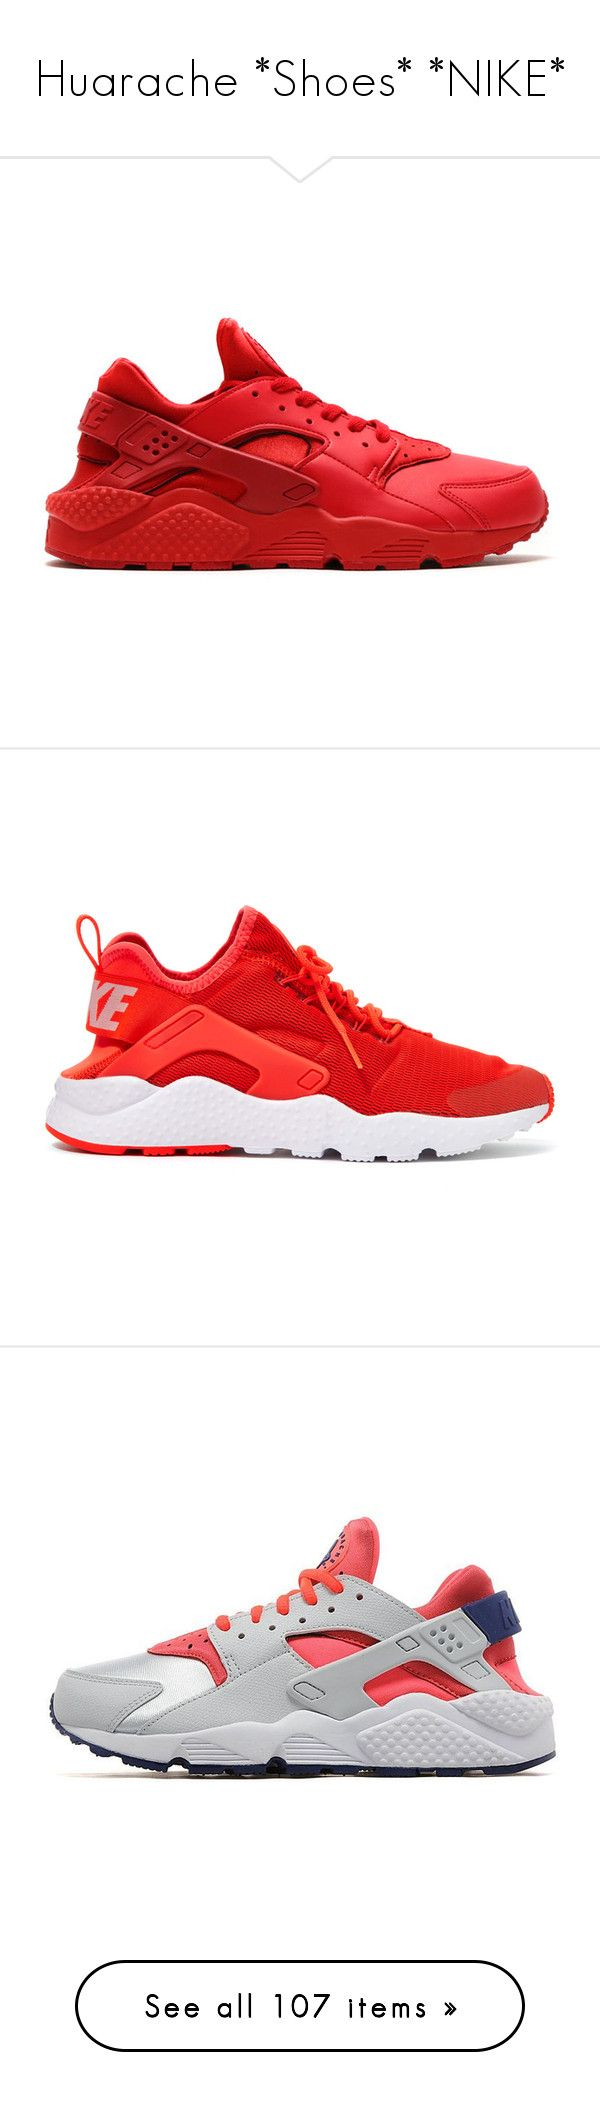 """""""Huarache *Shoes* *NIKE*"""" by queenswag245 ❤ liked on Polyvore featuring shoes, sneakers, nike, navy sneakers, red trainers, navy blue sneakers, red sneakers, huaraches, nike trainers and nike shoes"""